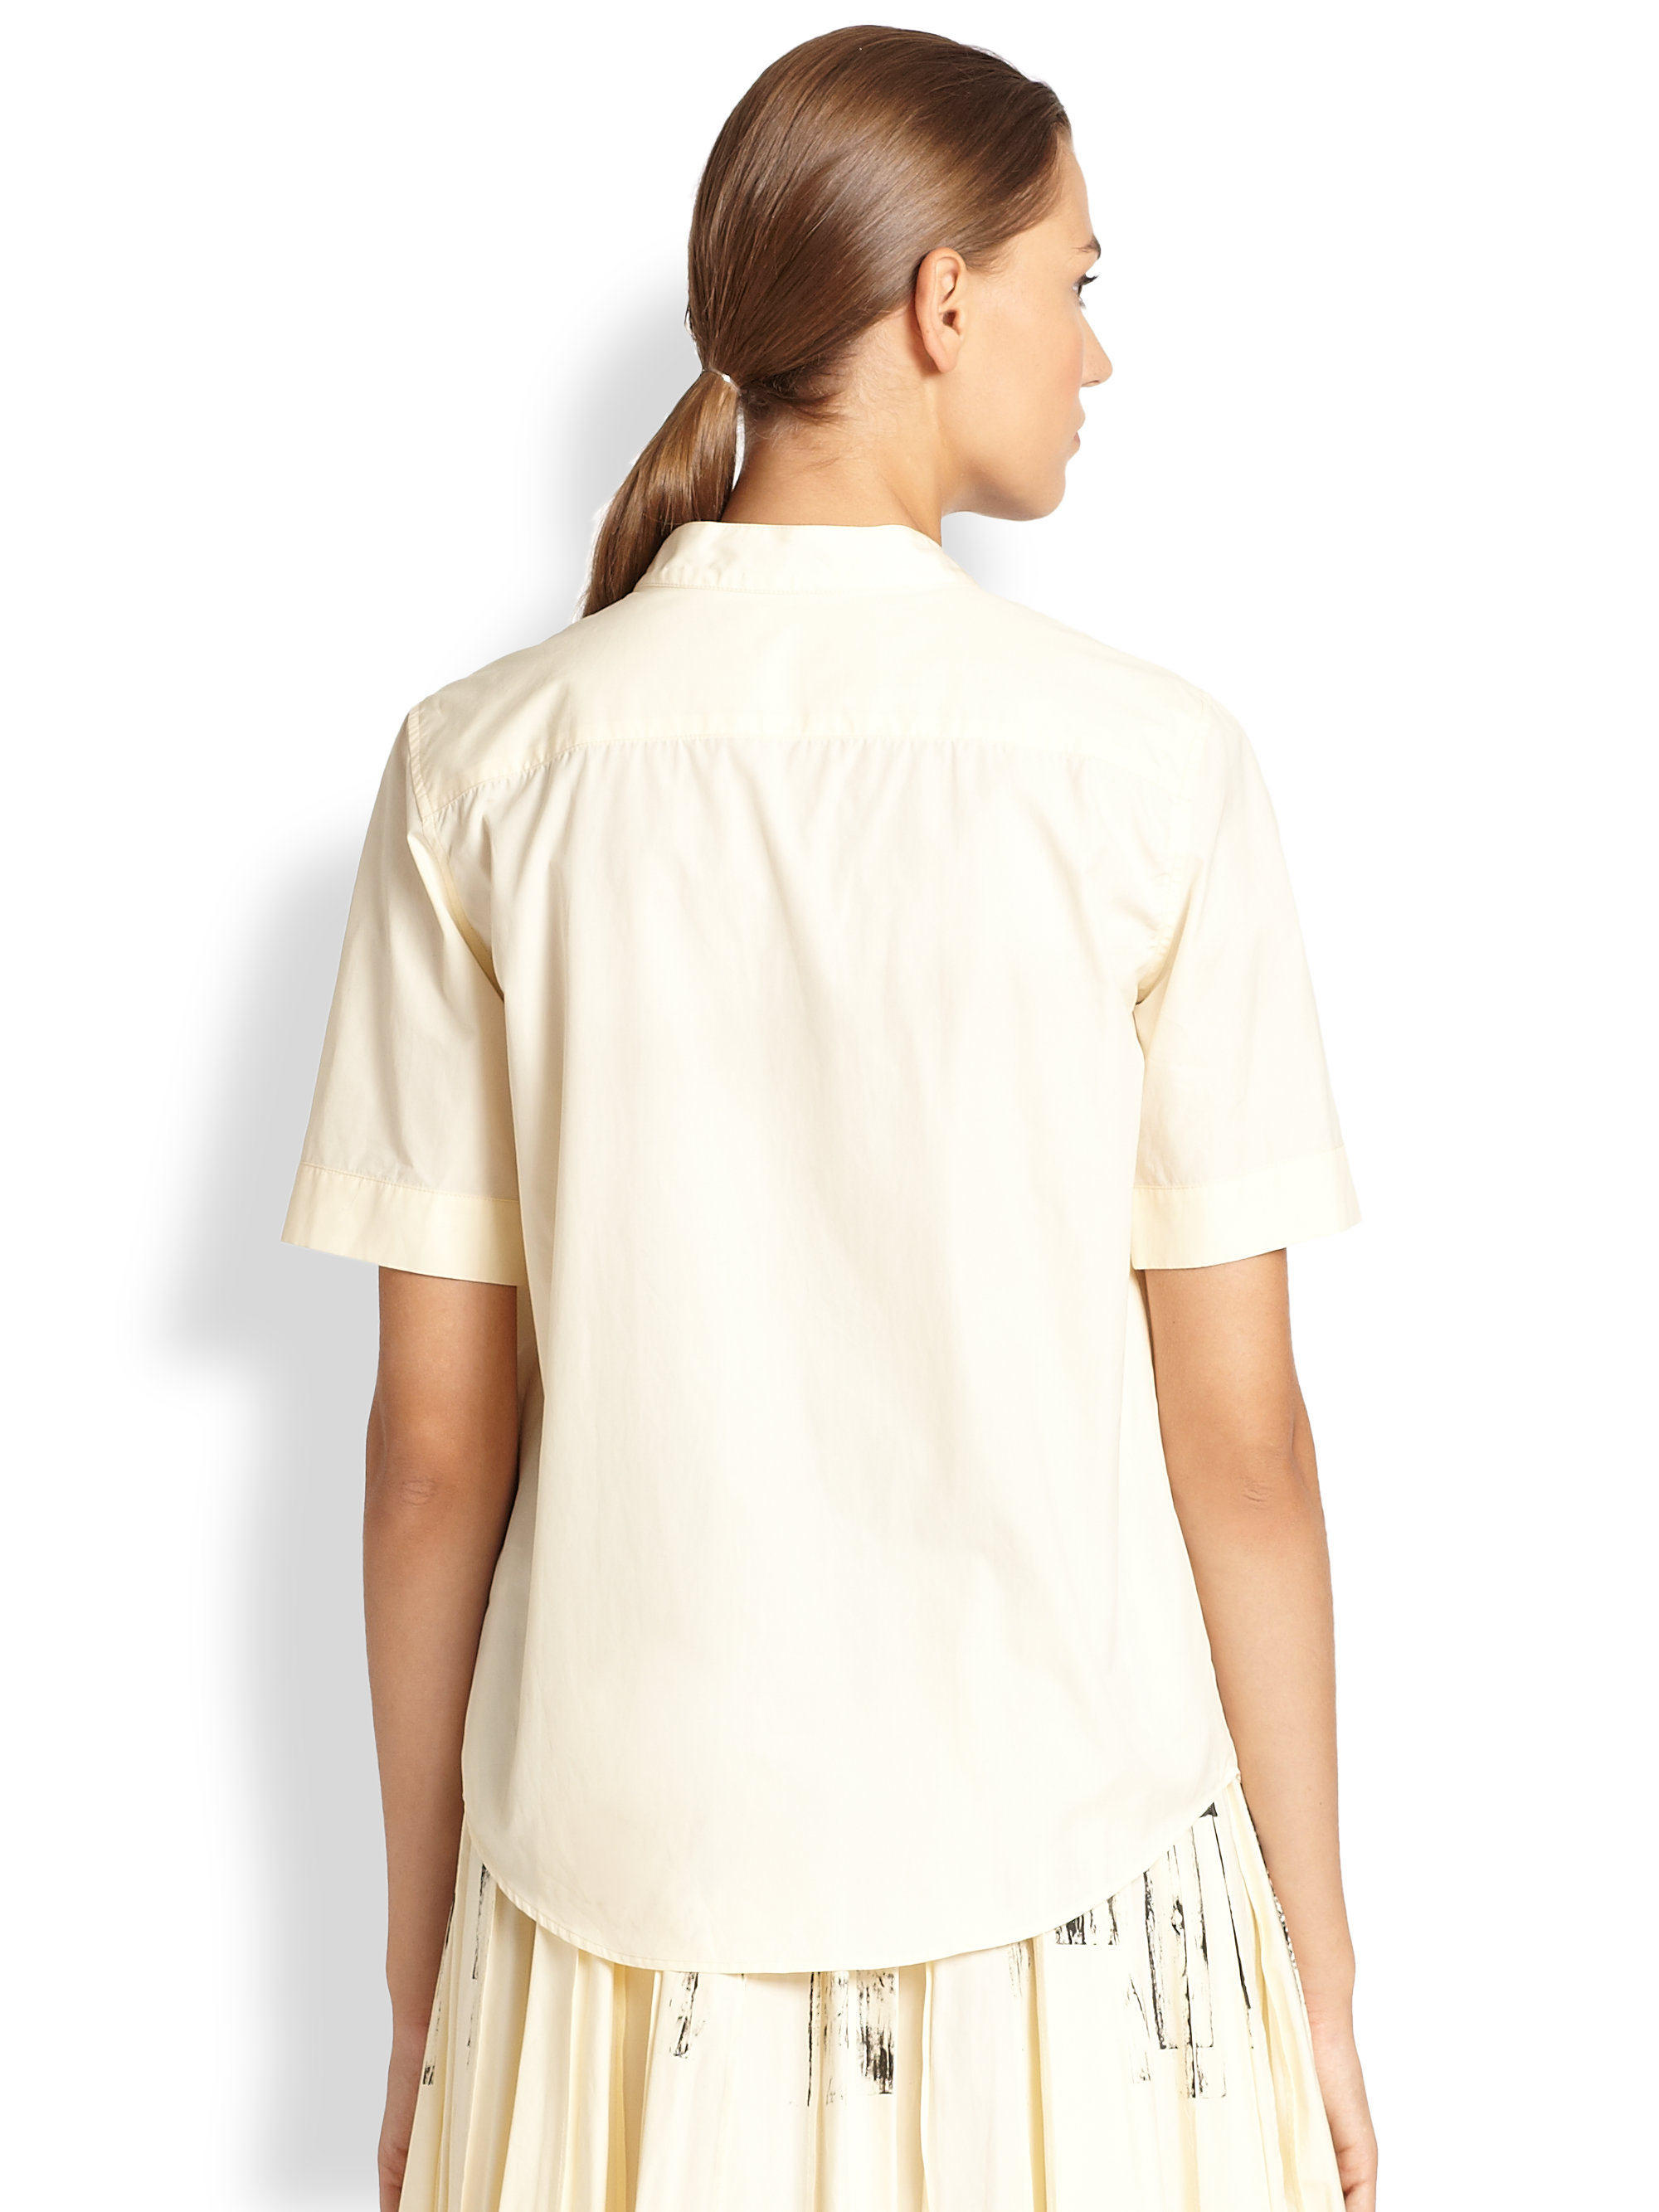 Lyst bottega veneta collar print shirt in white for Bottega veneta t shirt